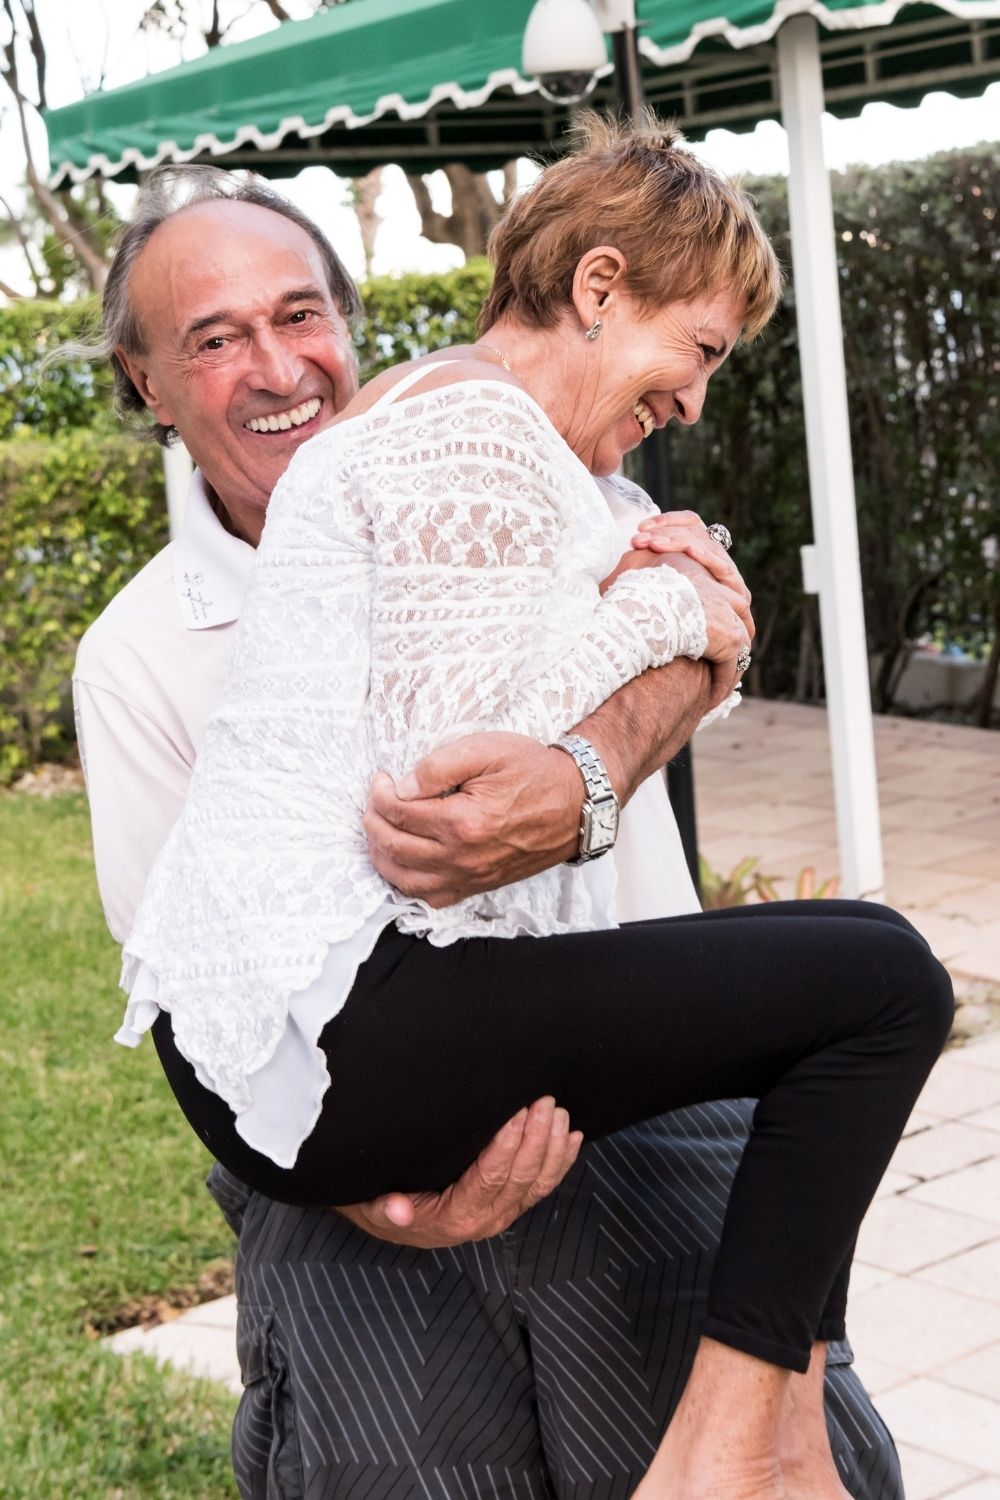 Healthy Aging - Re-Invent Yourself CHCW